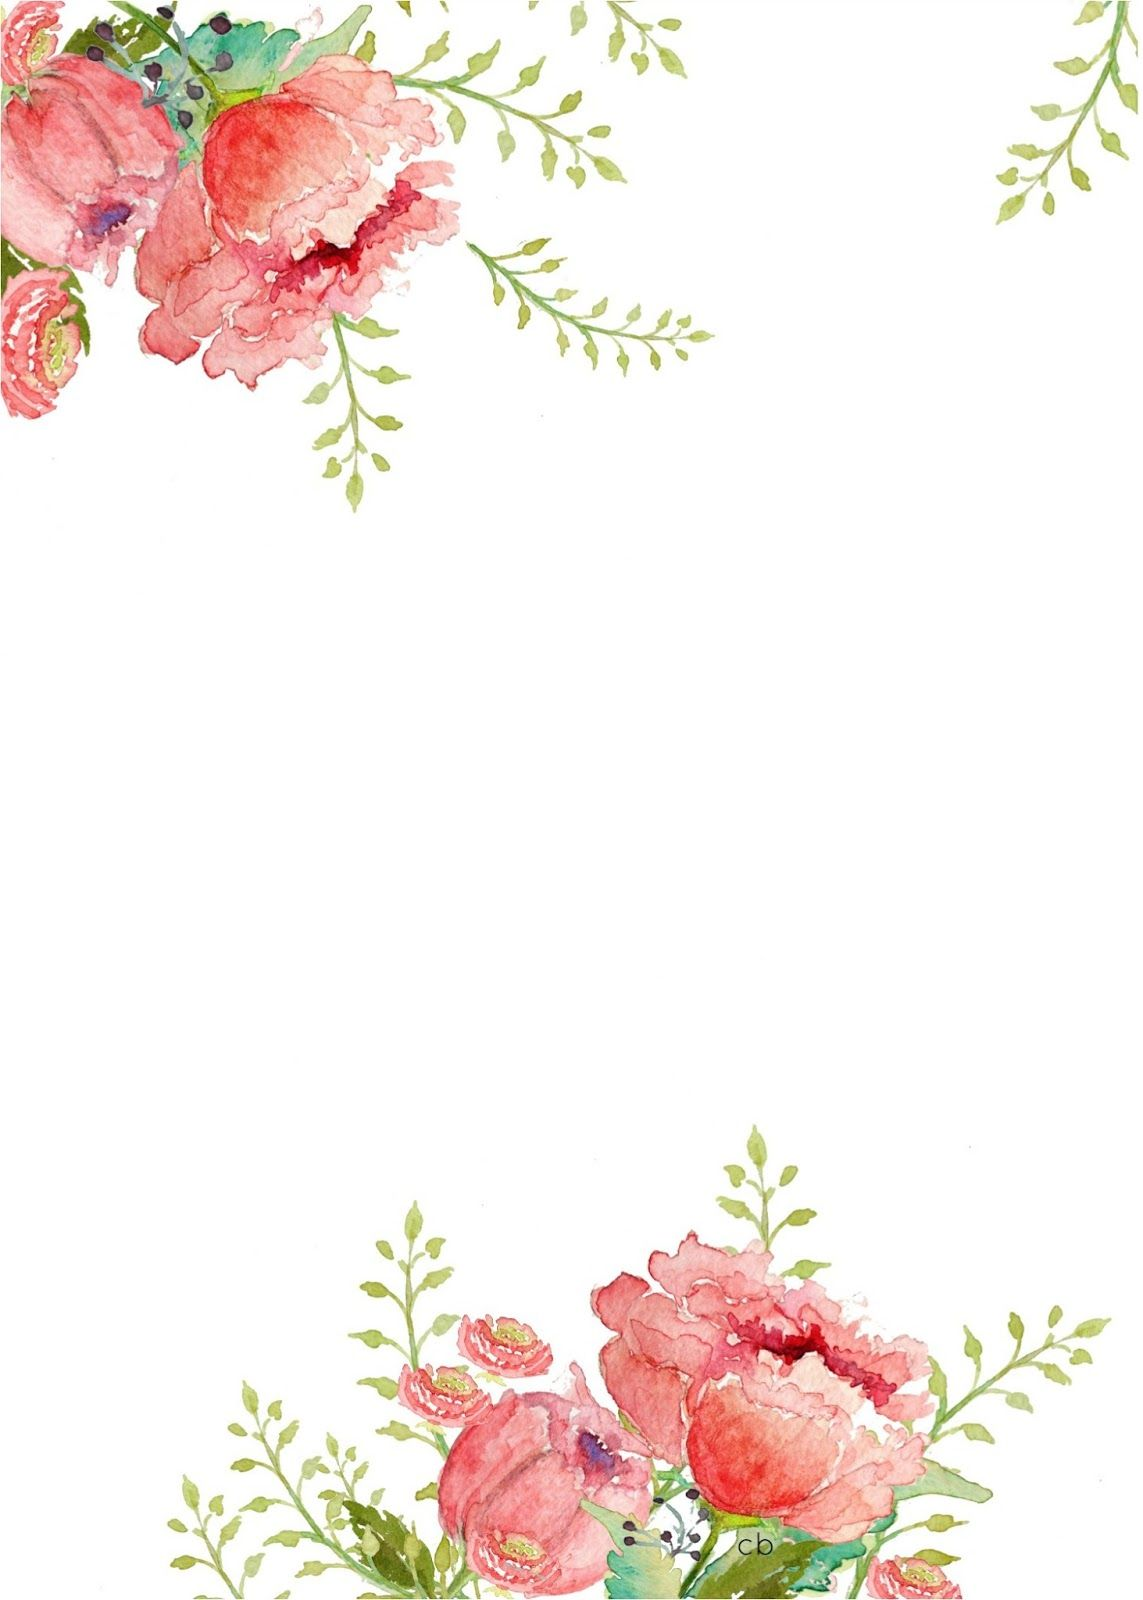 flower invitations templates free - Selo.l-ink.co